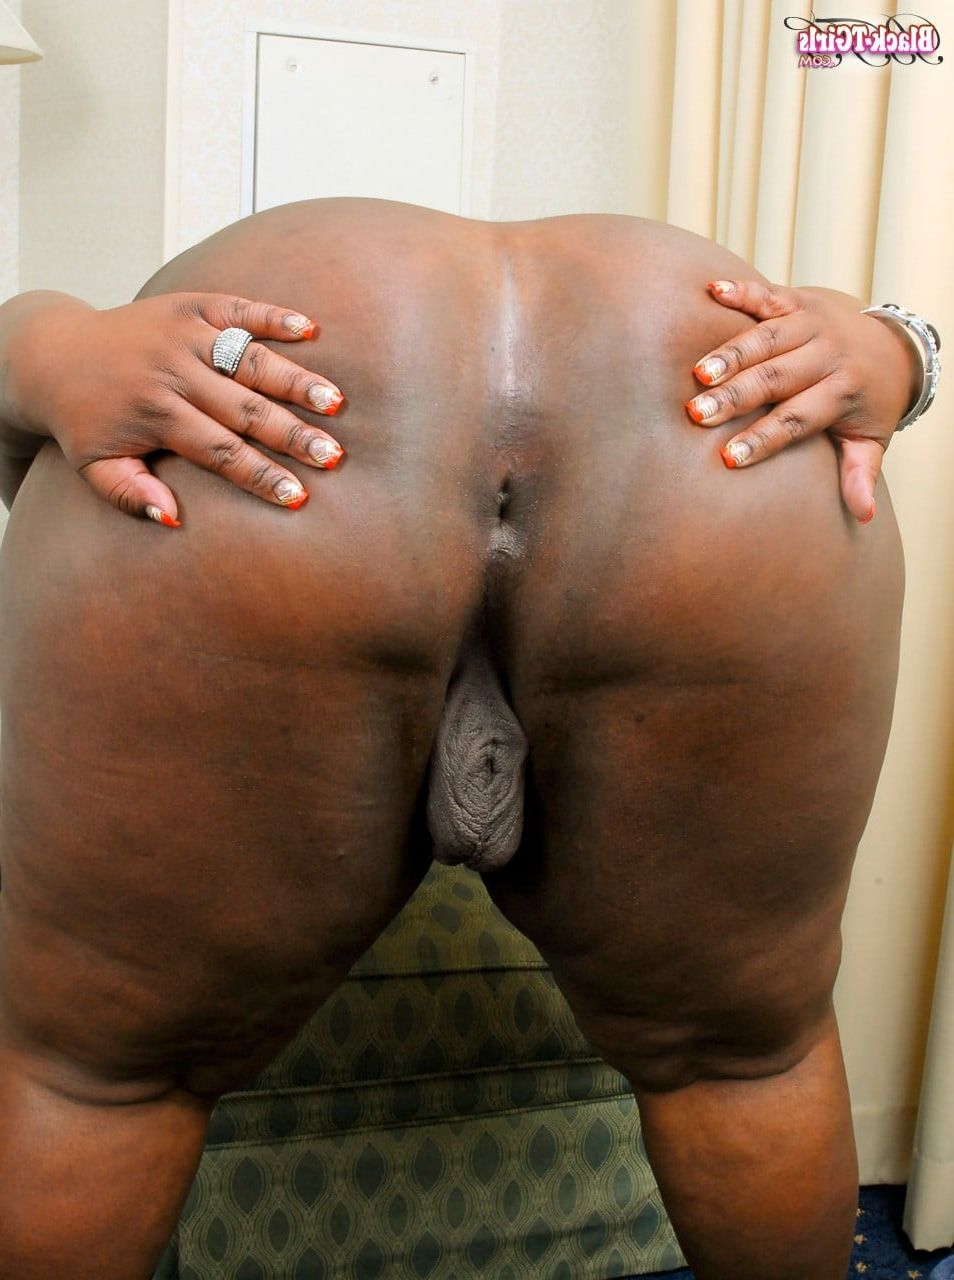 Black assholes pictures galleries